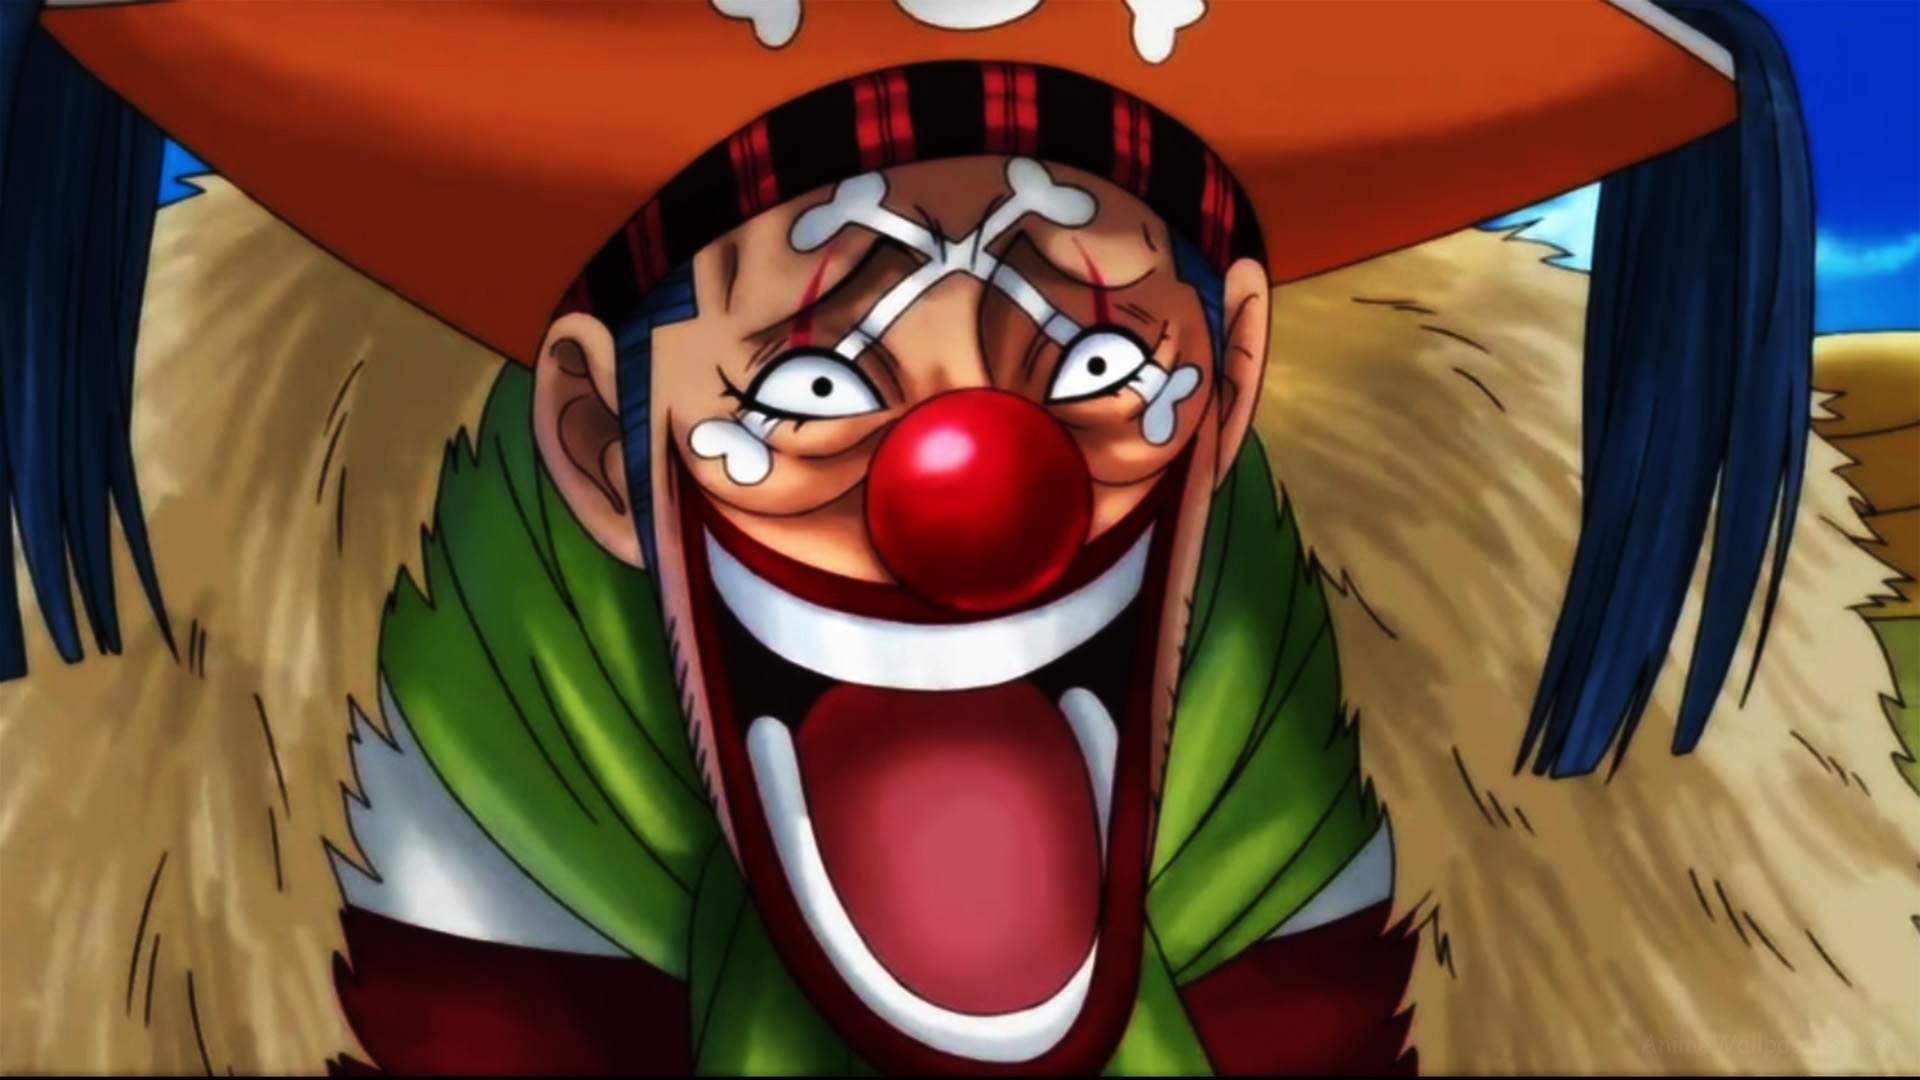 Download Wallpaper Hd One Piece One Piece Buggy Wallpaper 7 Jpg Hd Wallpapers Hd Images